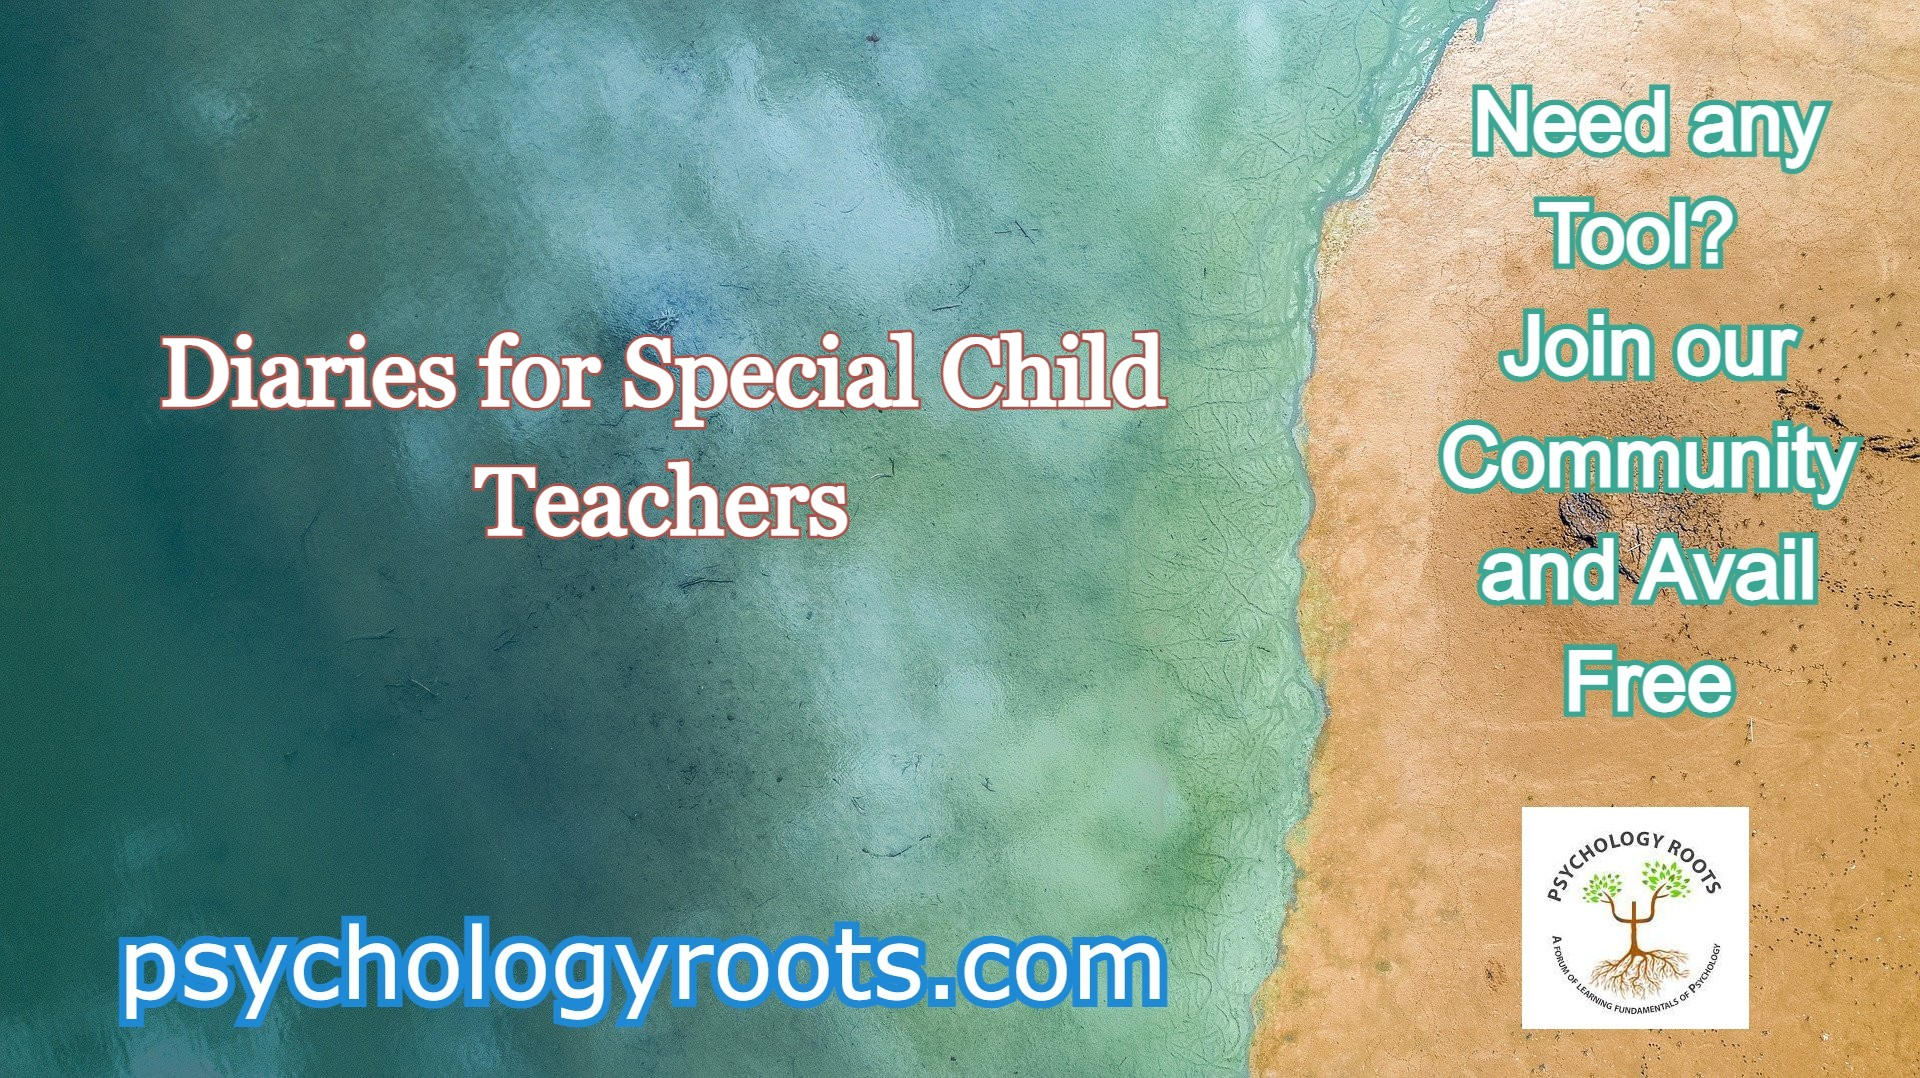 Diaries for Special Child Teachers